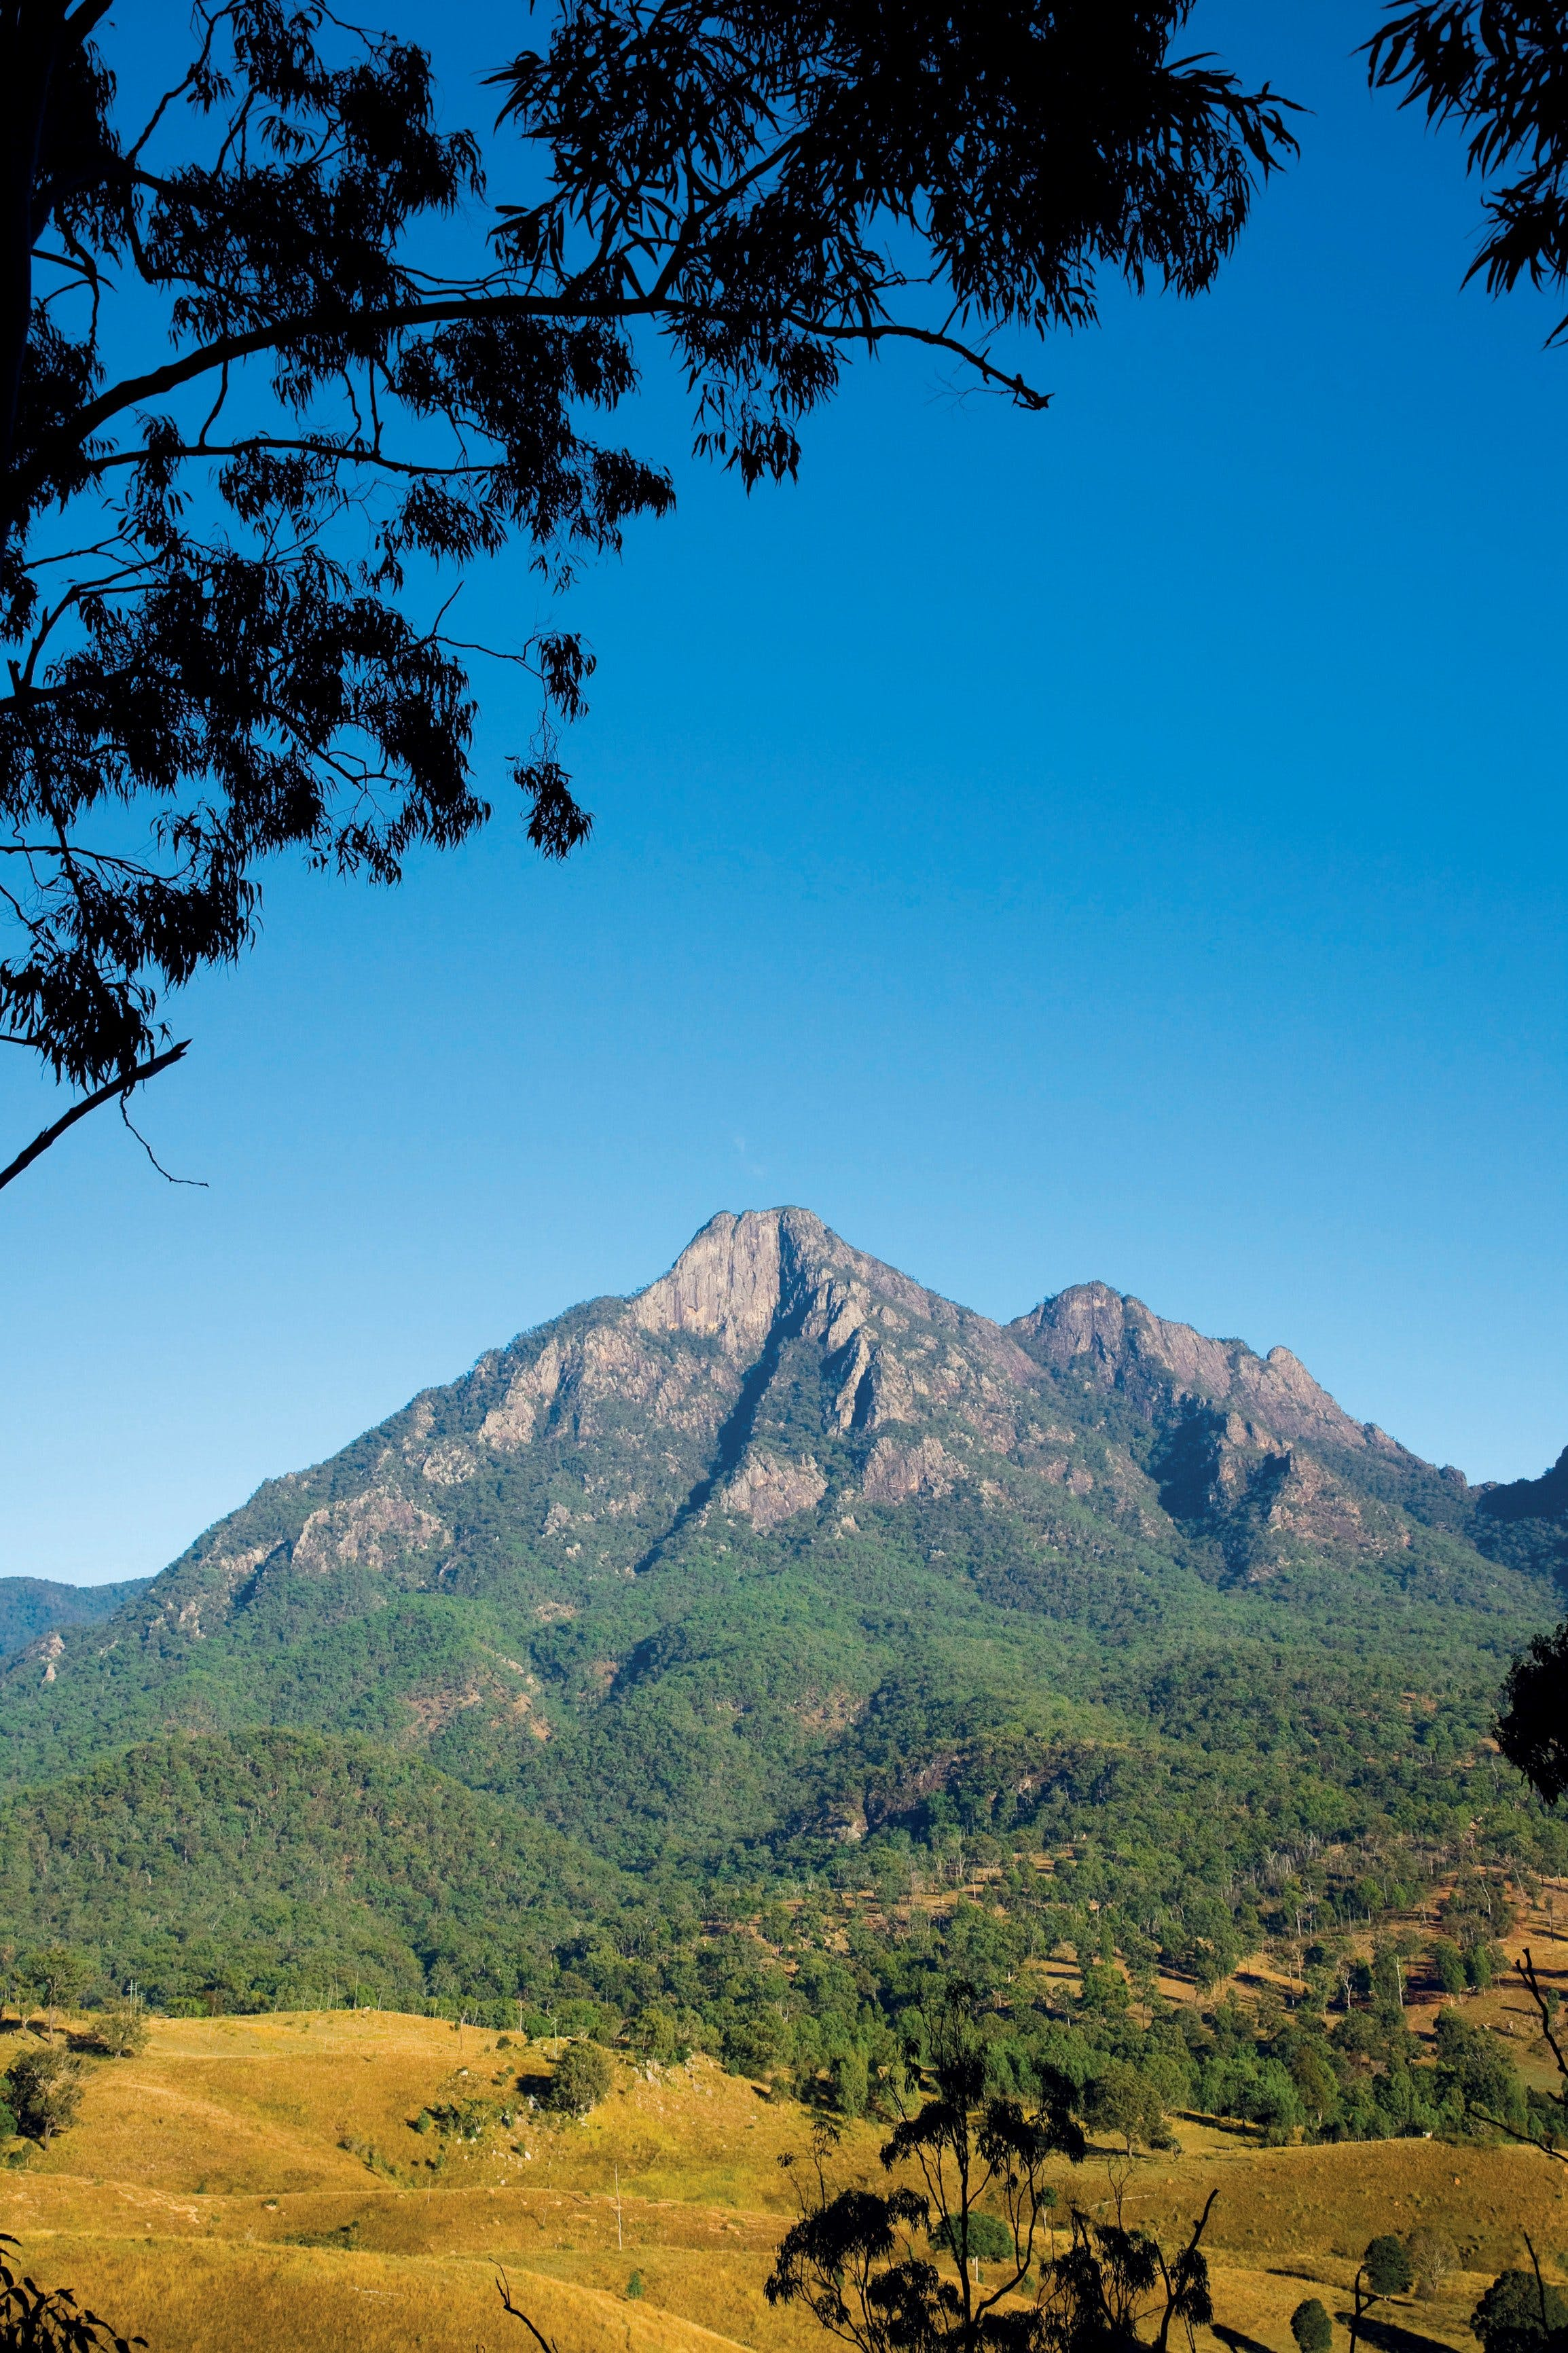 Lower Portals track Mount Barney National Park - Accommodation Rockhampton